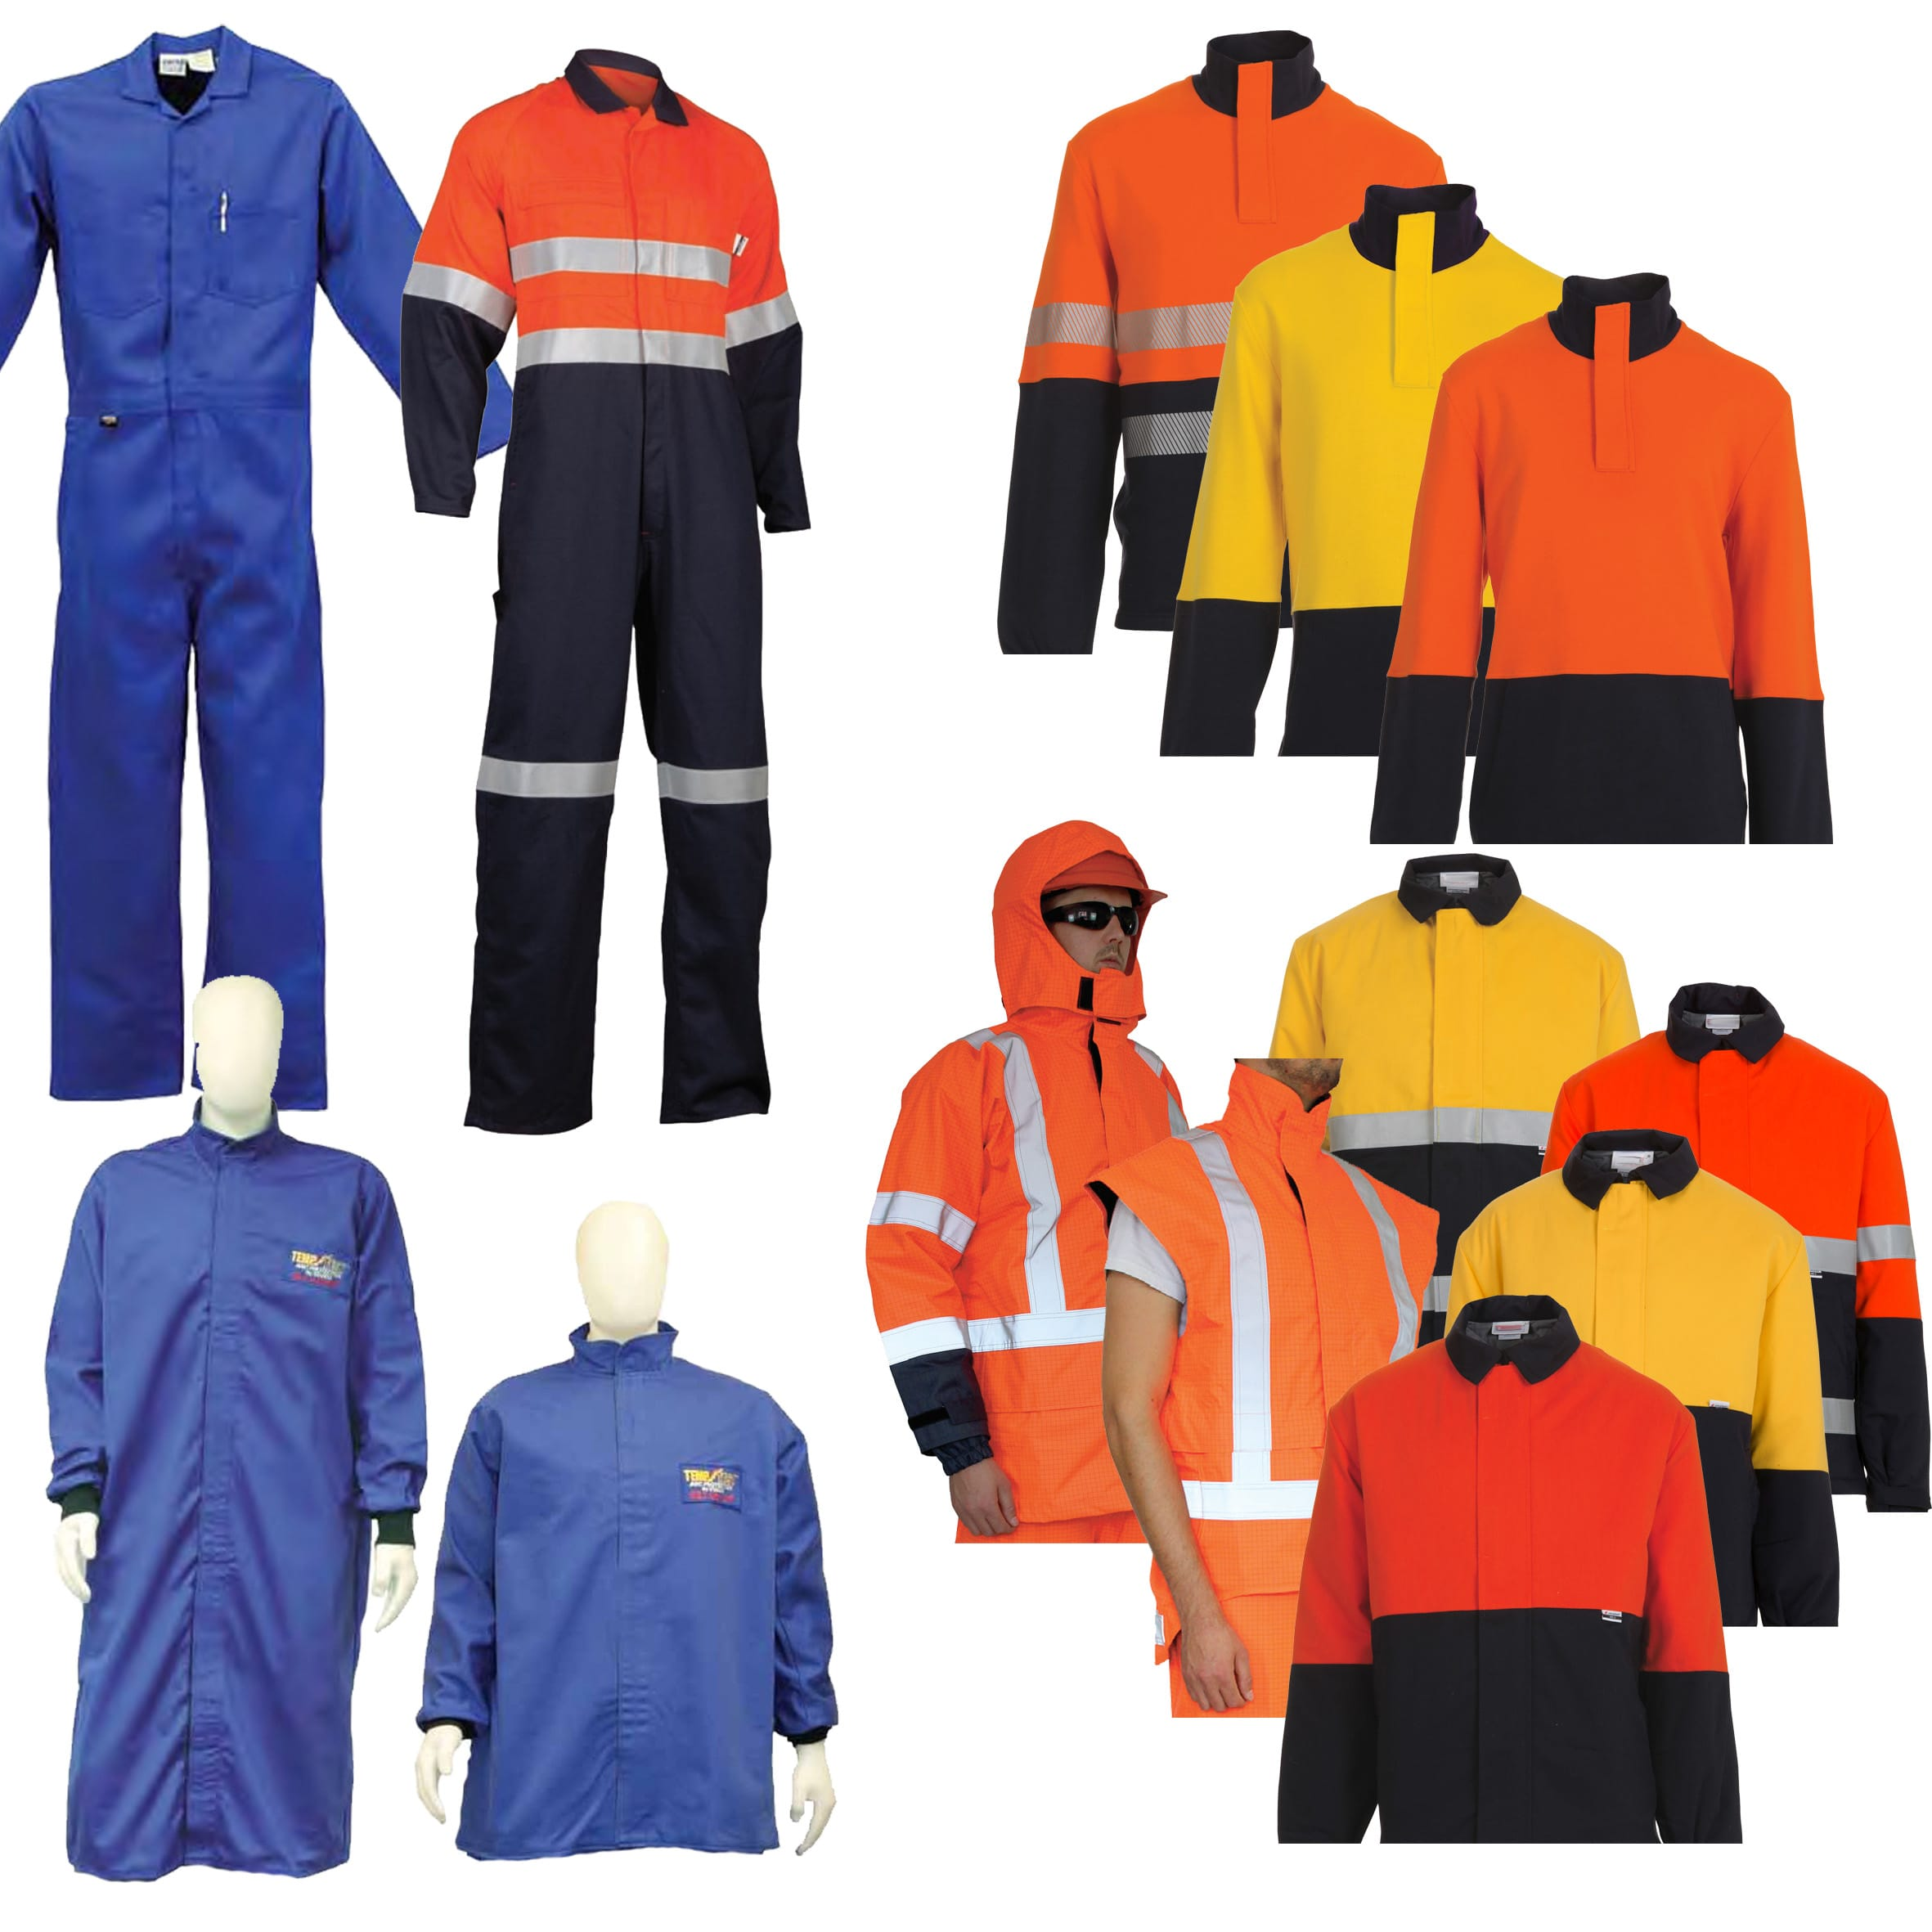 Arc Flash Overalls - Coats - Jackets -Jumpers